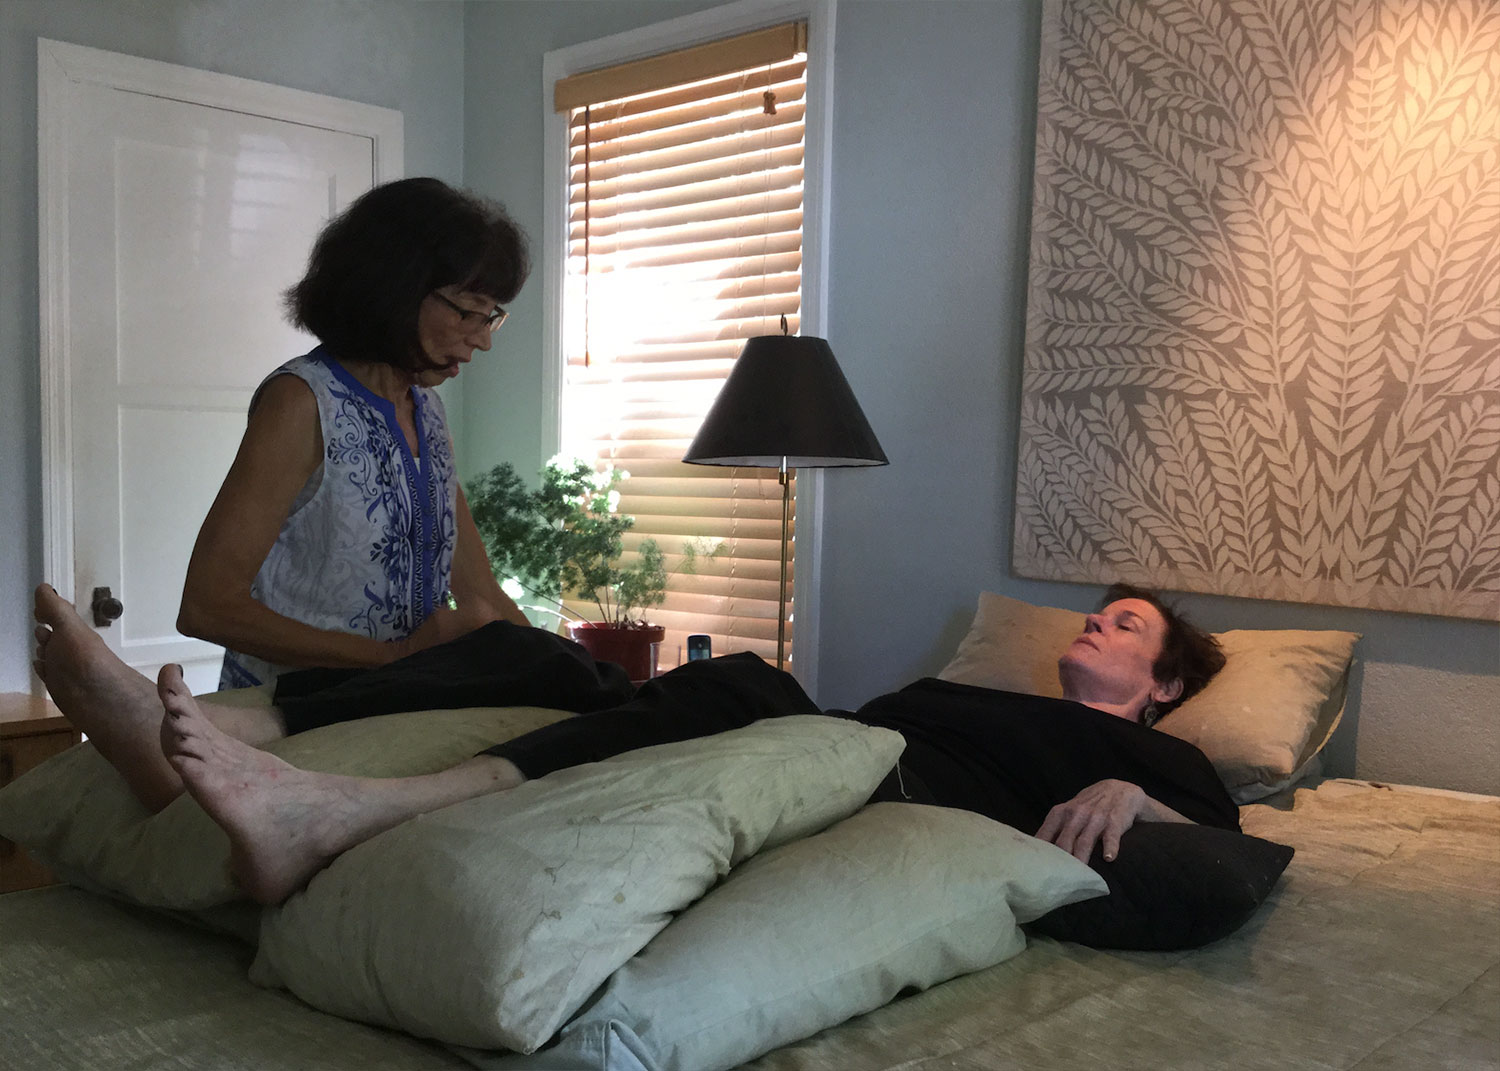 A client in yoga nidra, guided relaxation.